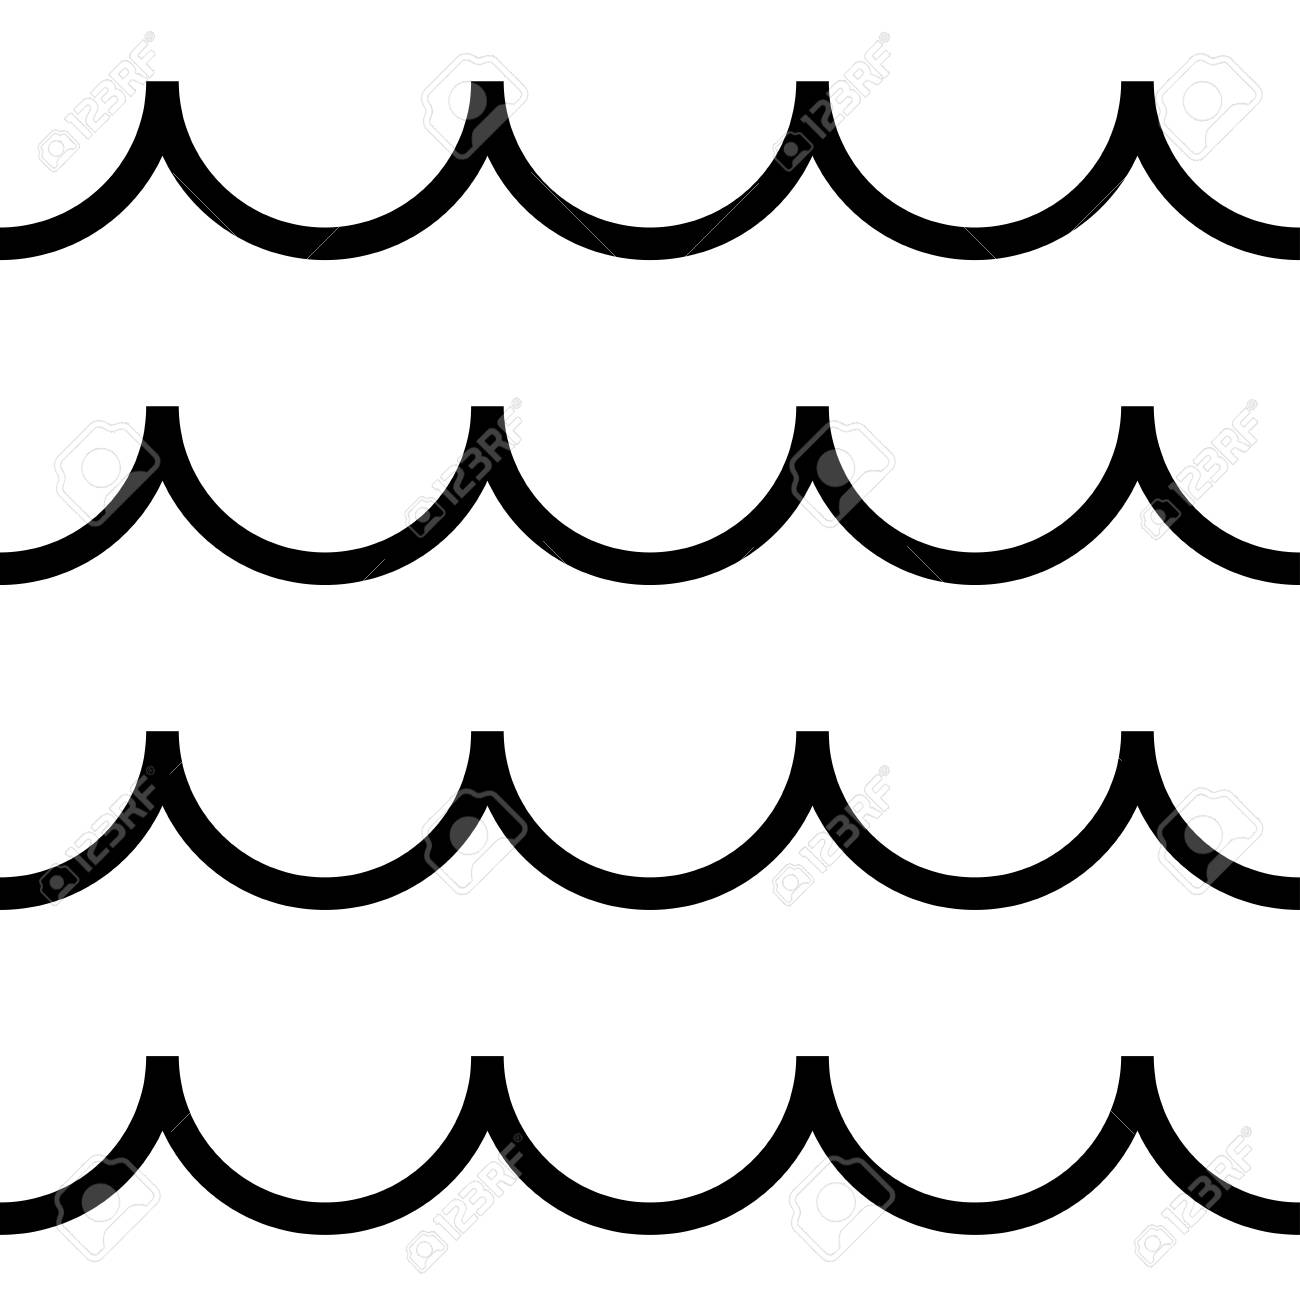 Wavy clipart clipart free download Vector seamless pattern, horizontal wavy lines. » Clipart ... clipart free download